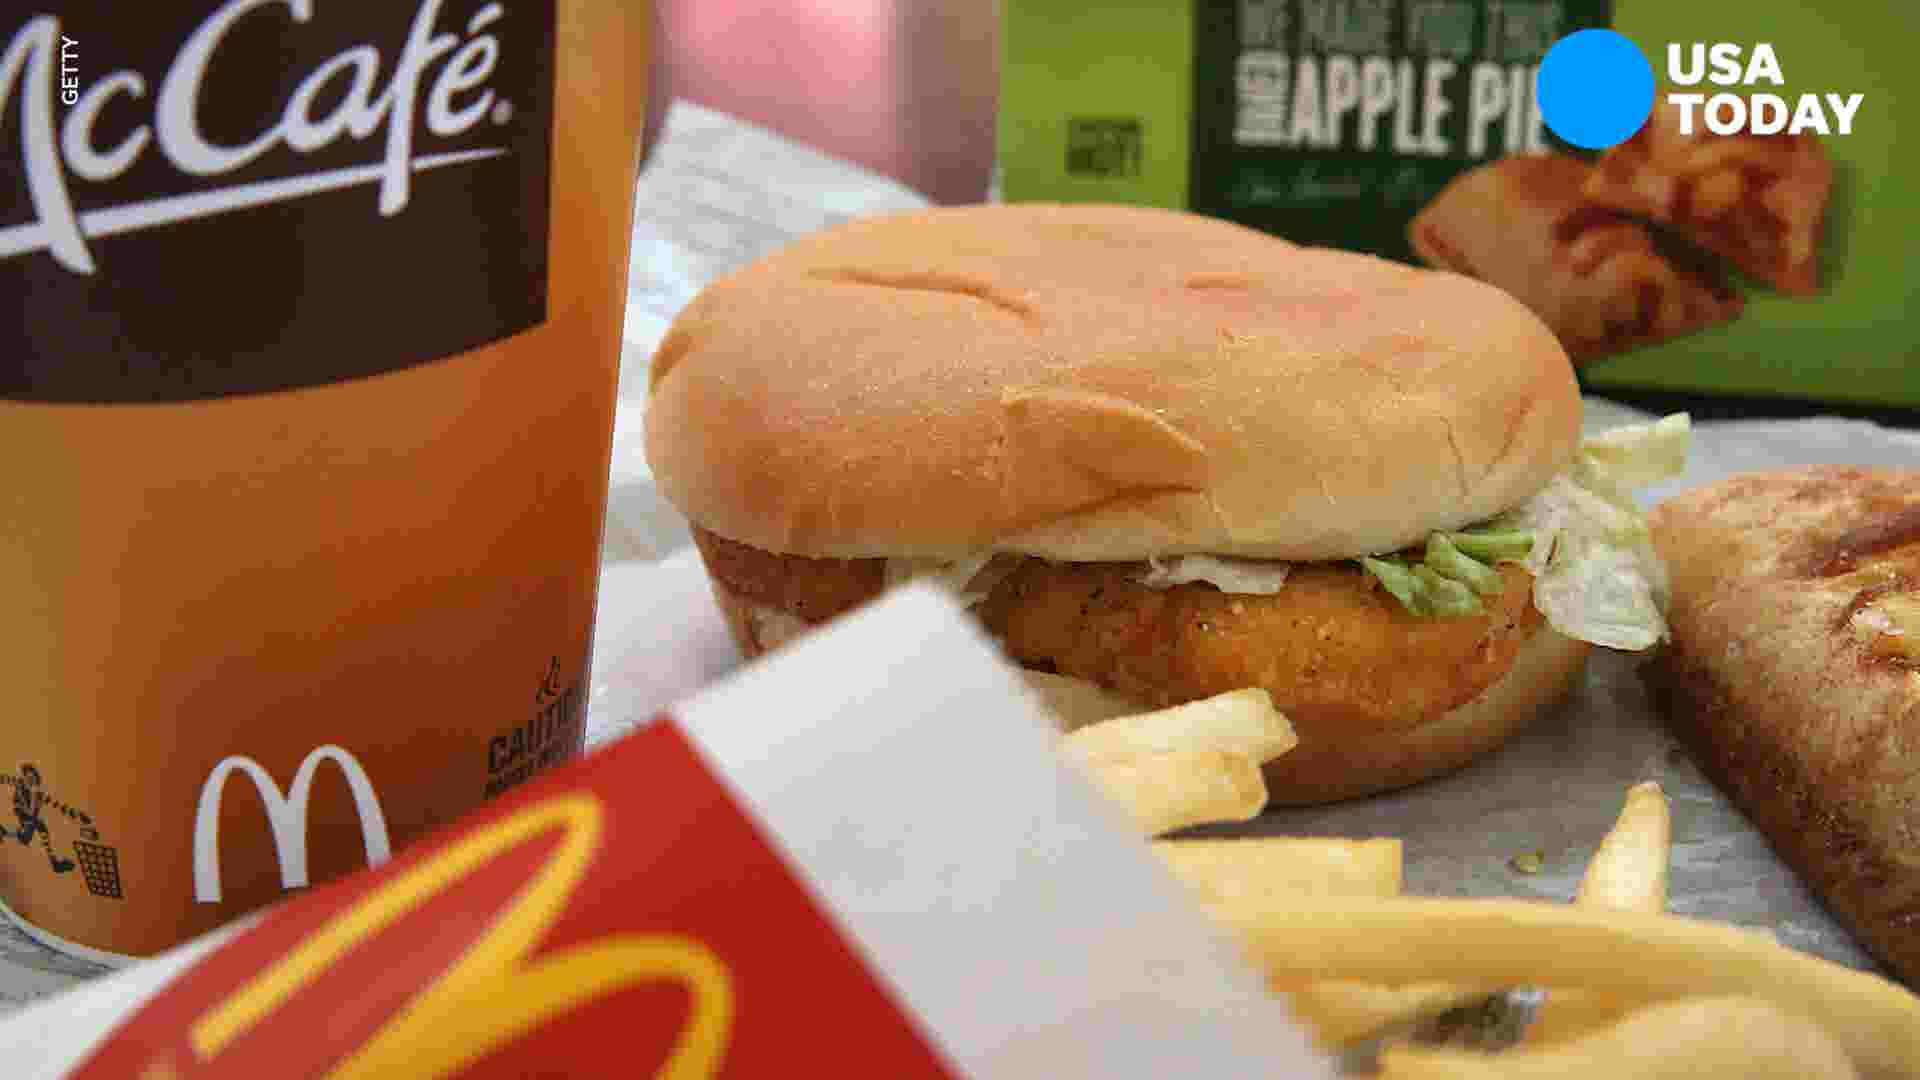 Officer forgets biting into McChicken and blames McDonald's workers for  bite marks